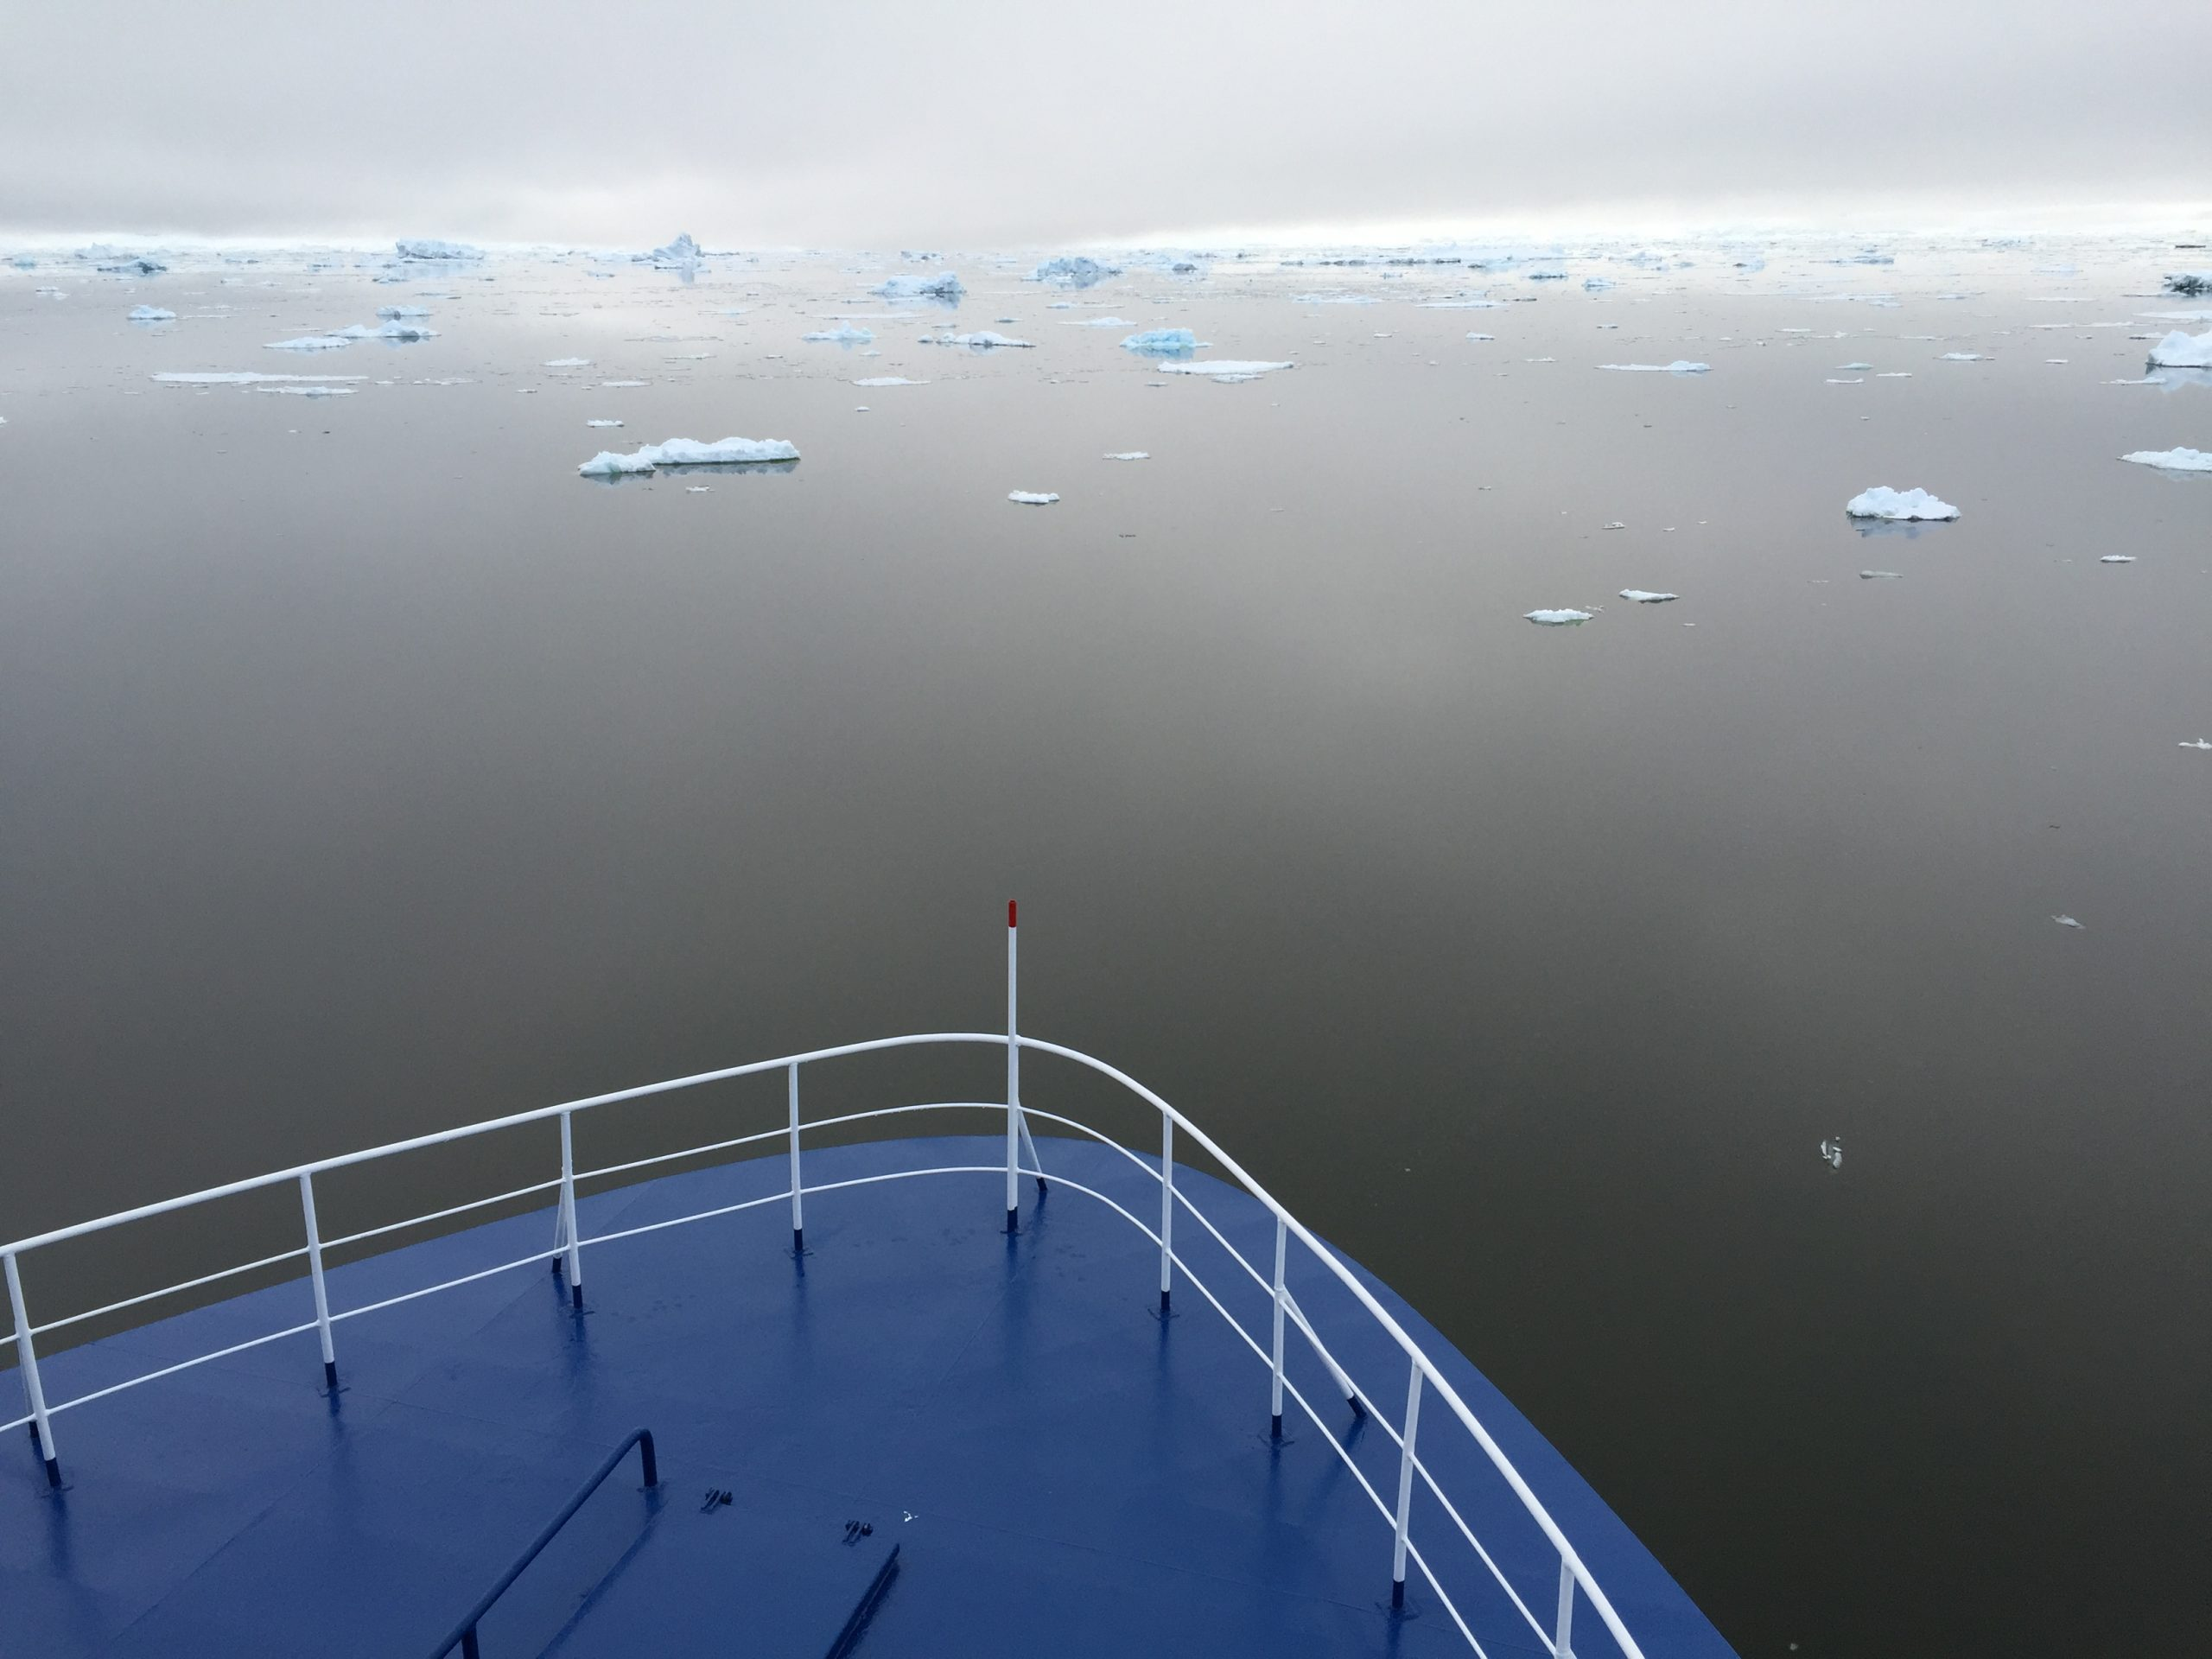 A view over the bow of a ship navigating through still icy waters in Antarctica